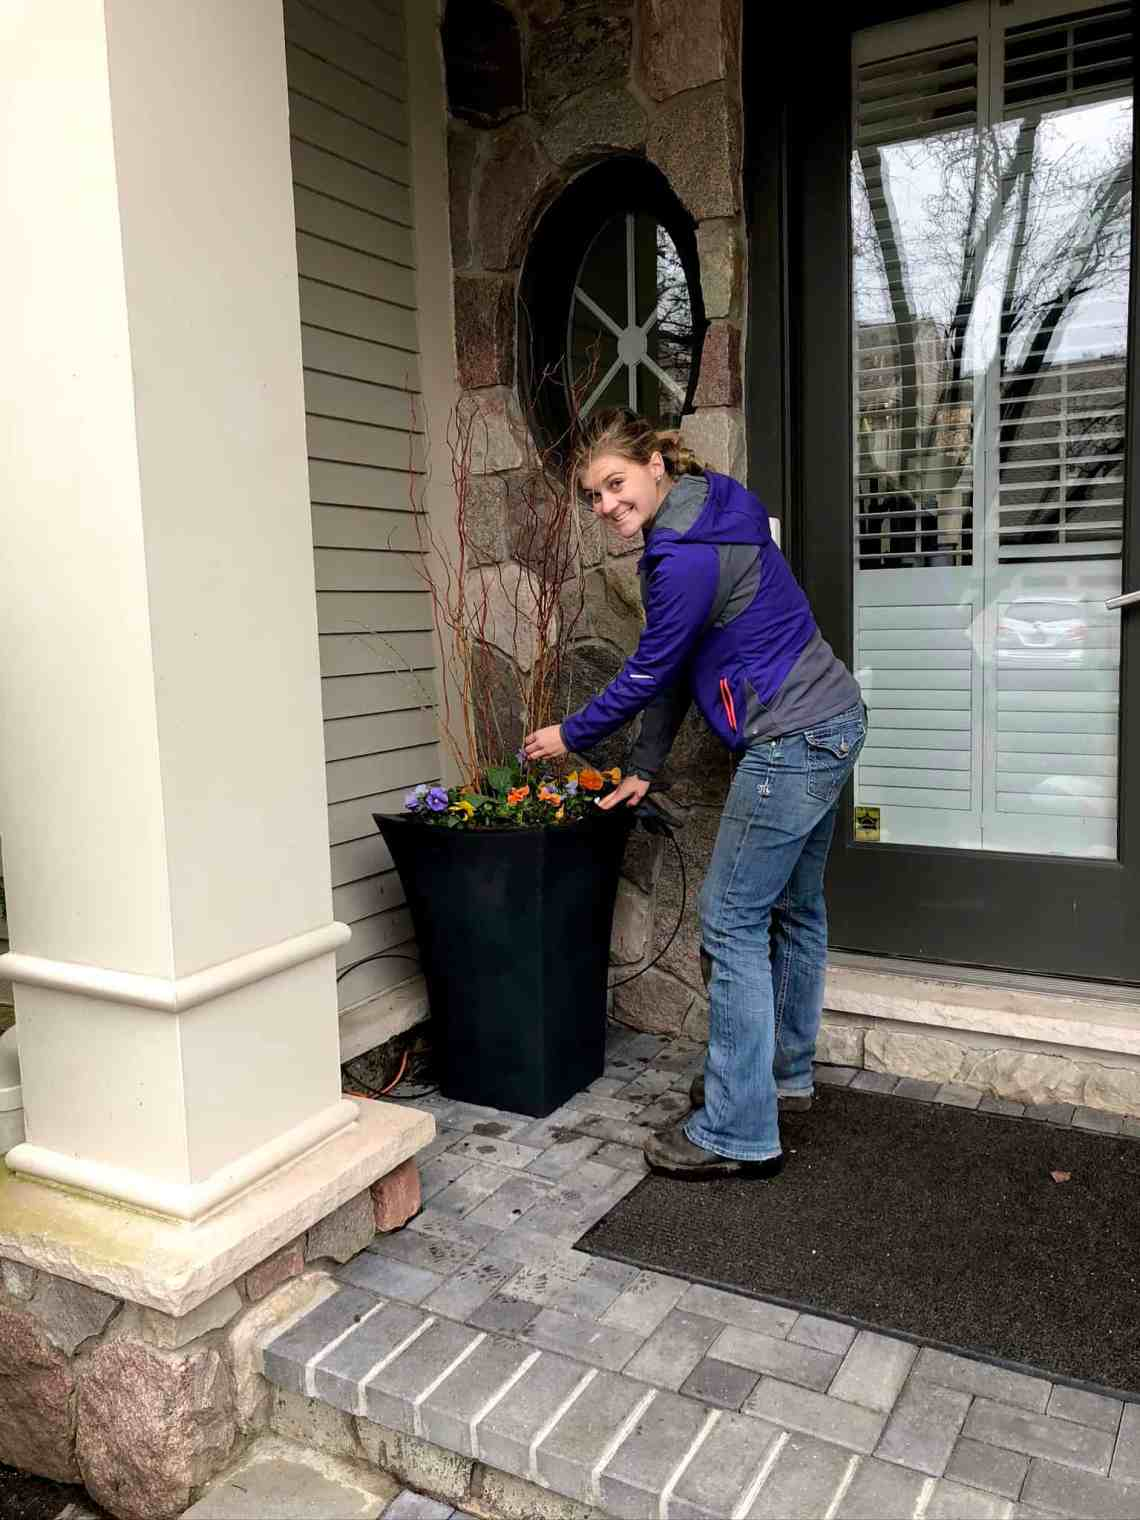 A woman smiles as she helps to create an interesting container arrangement next to the front door of a house. She adds small branches and pansies.